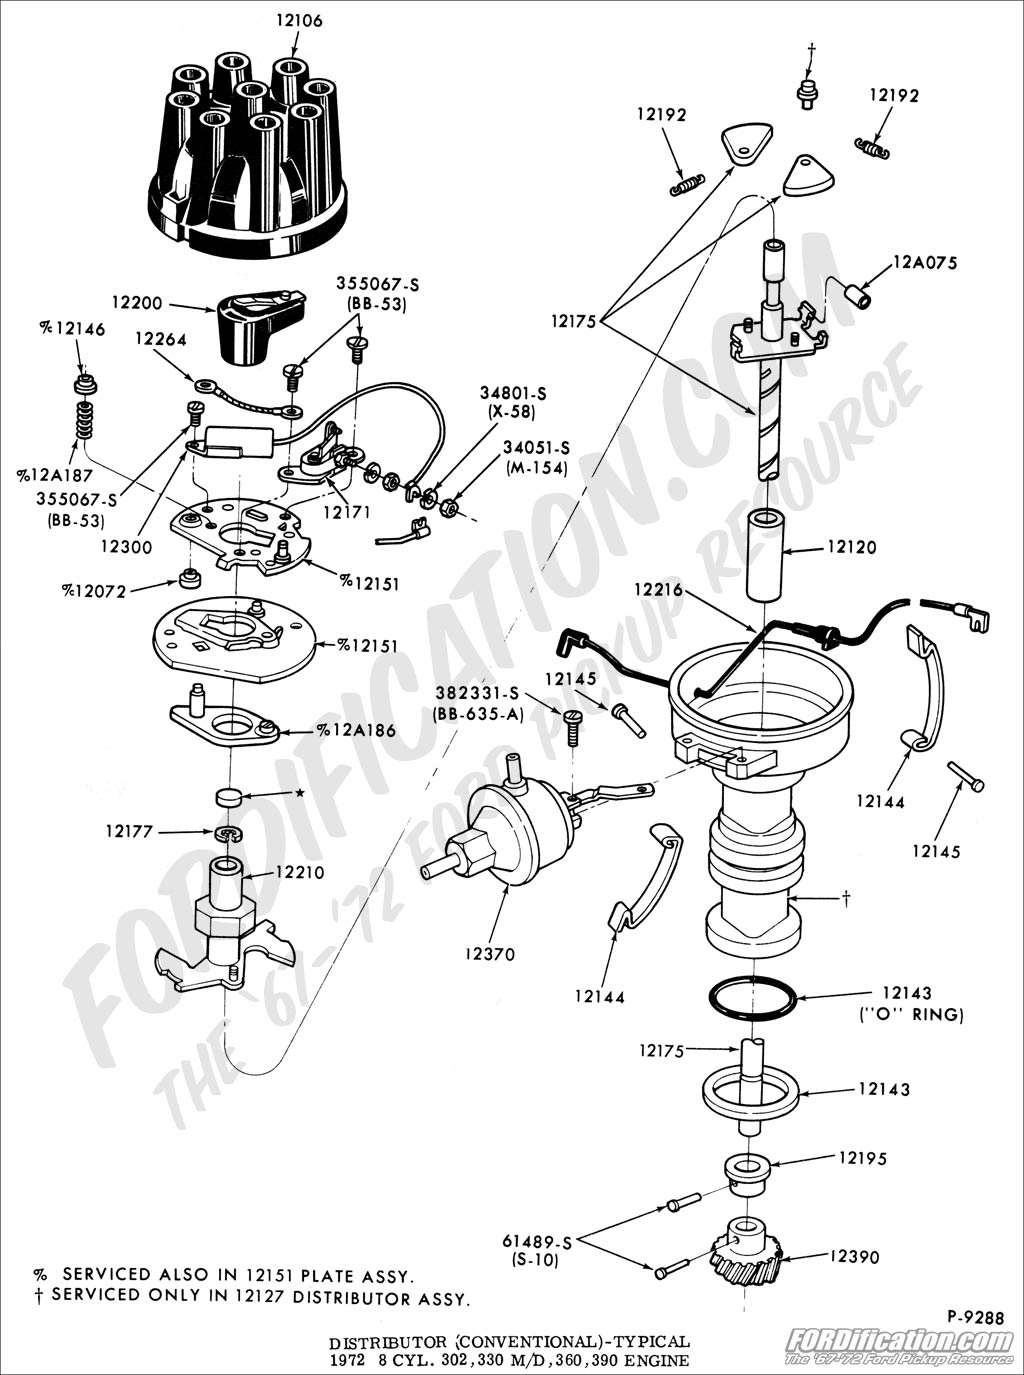 Distributor V on 1964 Mustang Starter Wiring